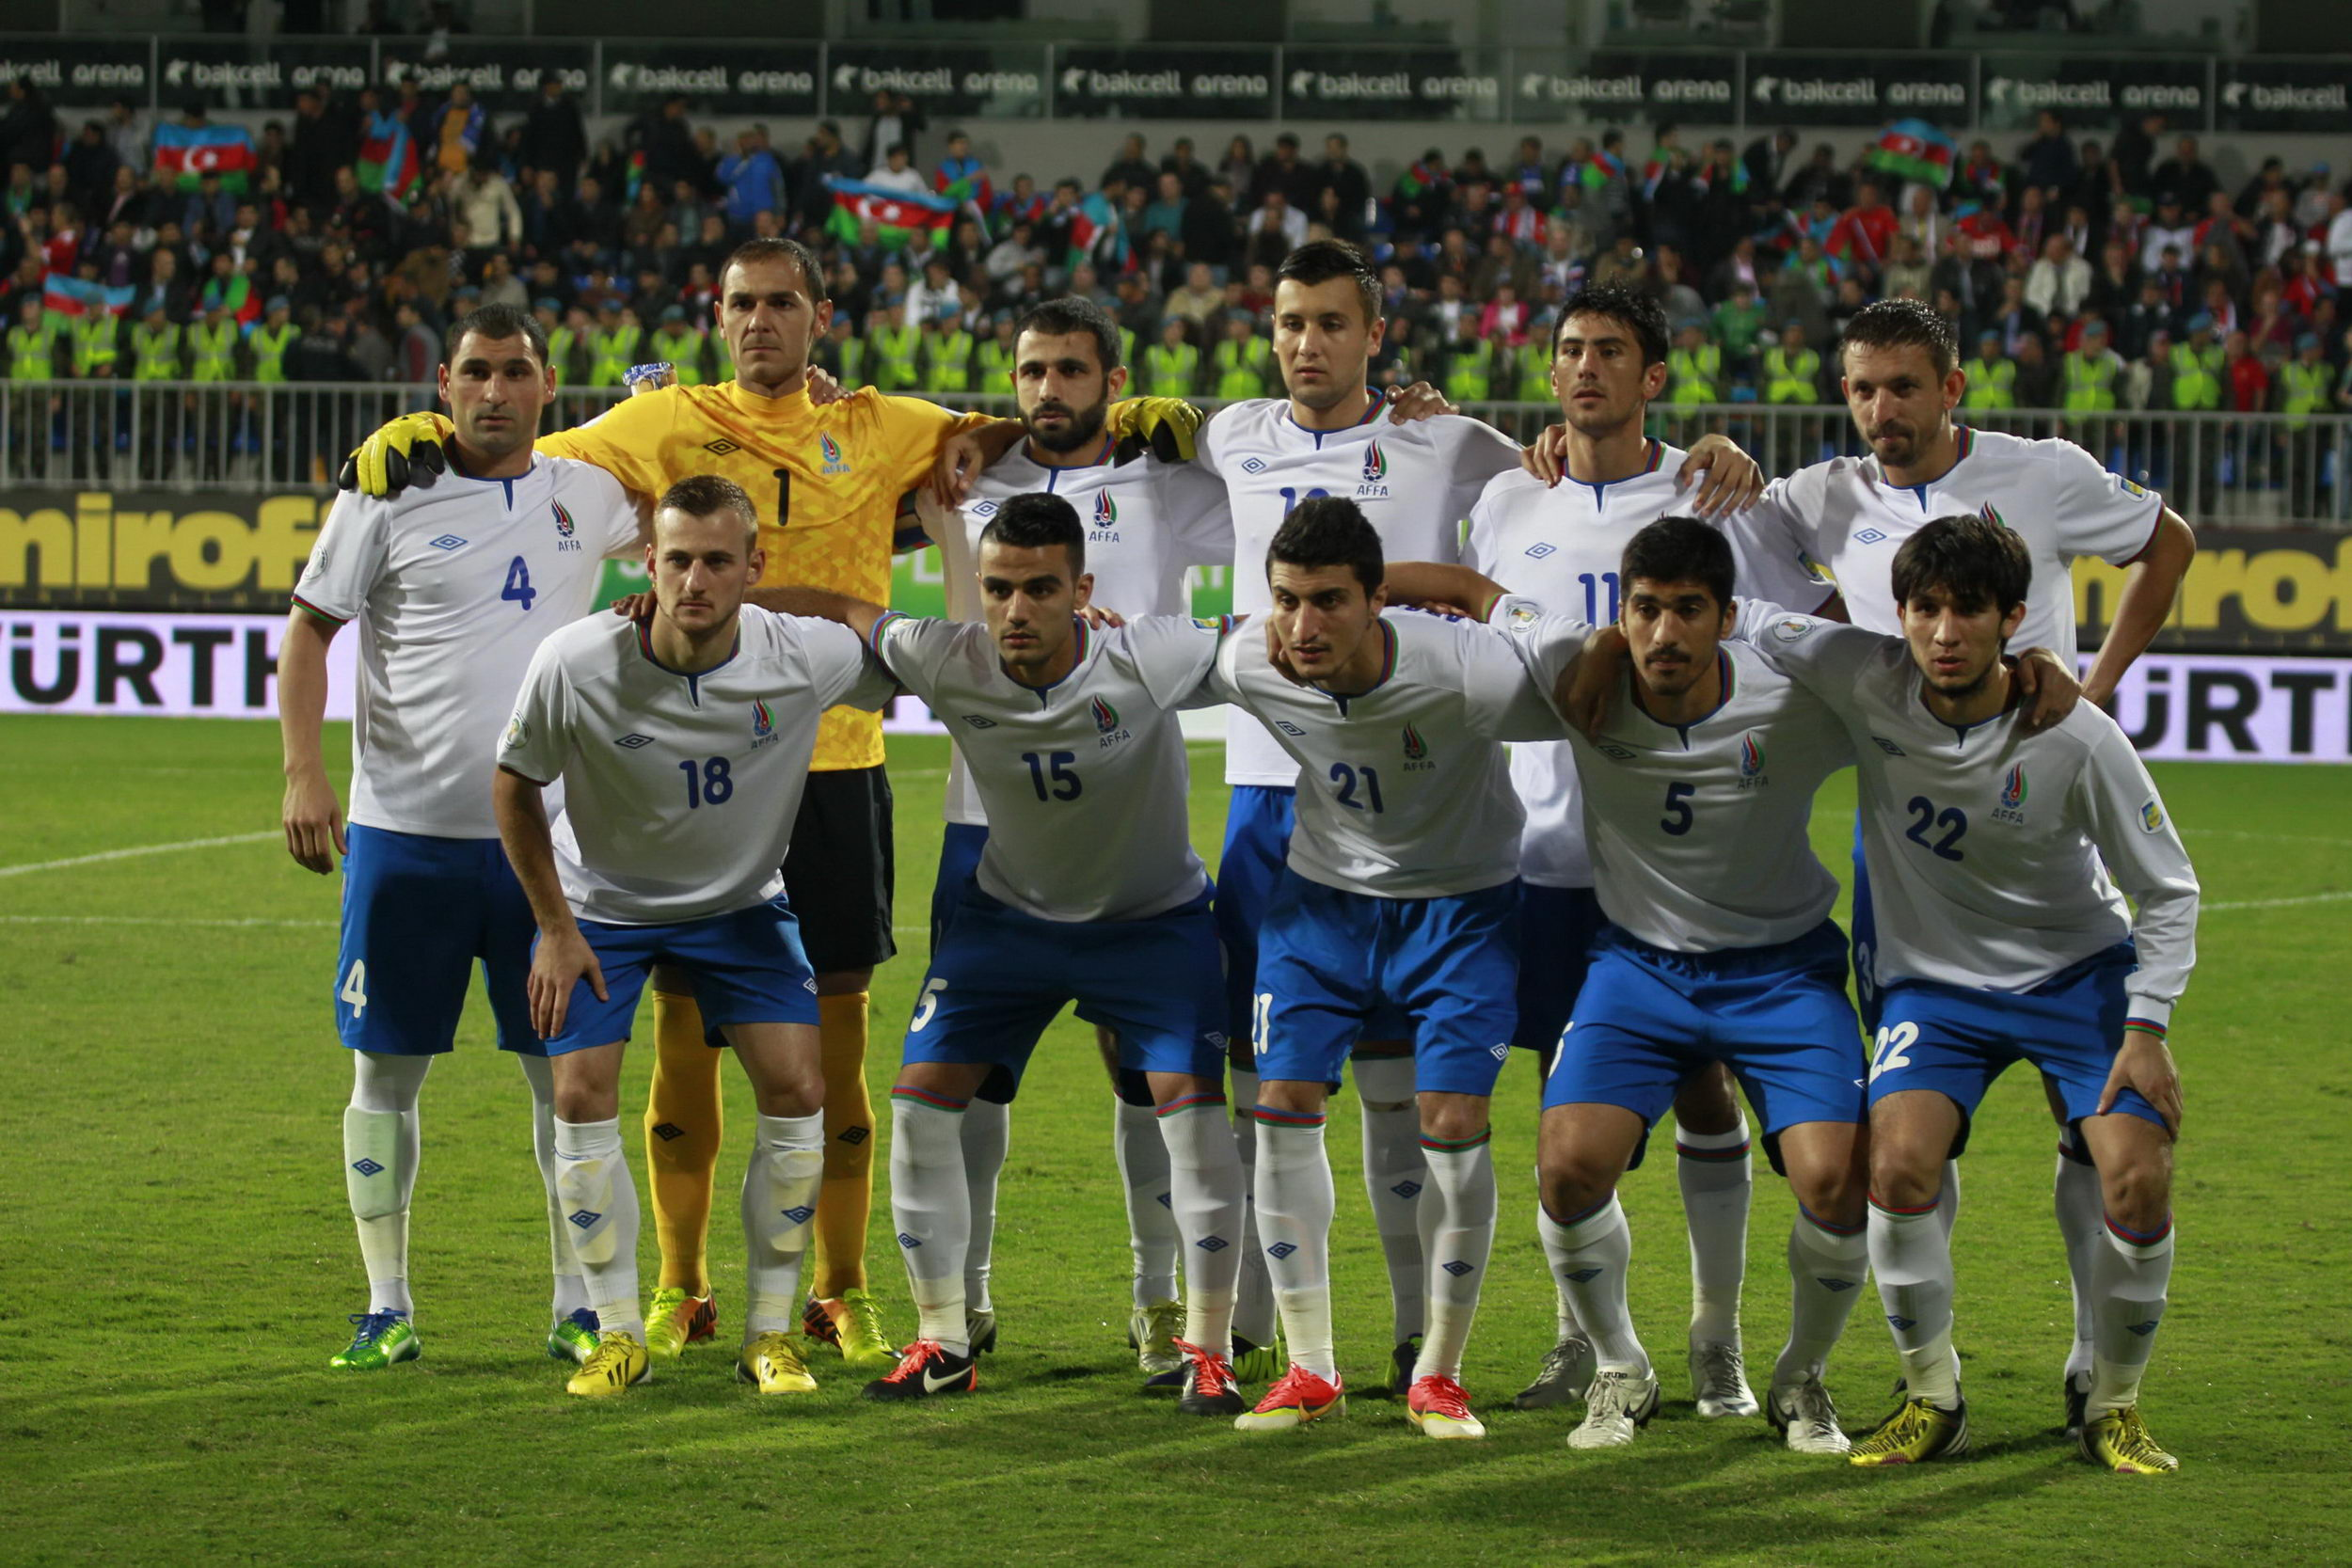 fbe6cf33a Azerbaijan national football team - Wikiwand